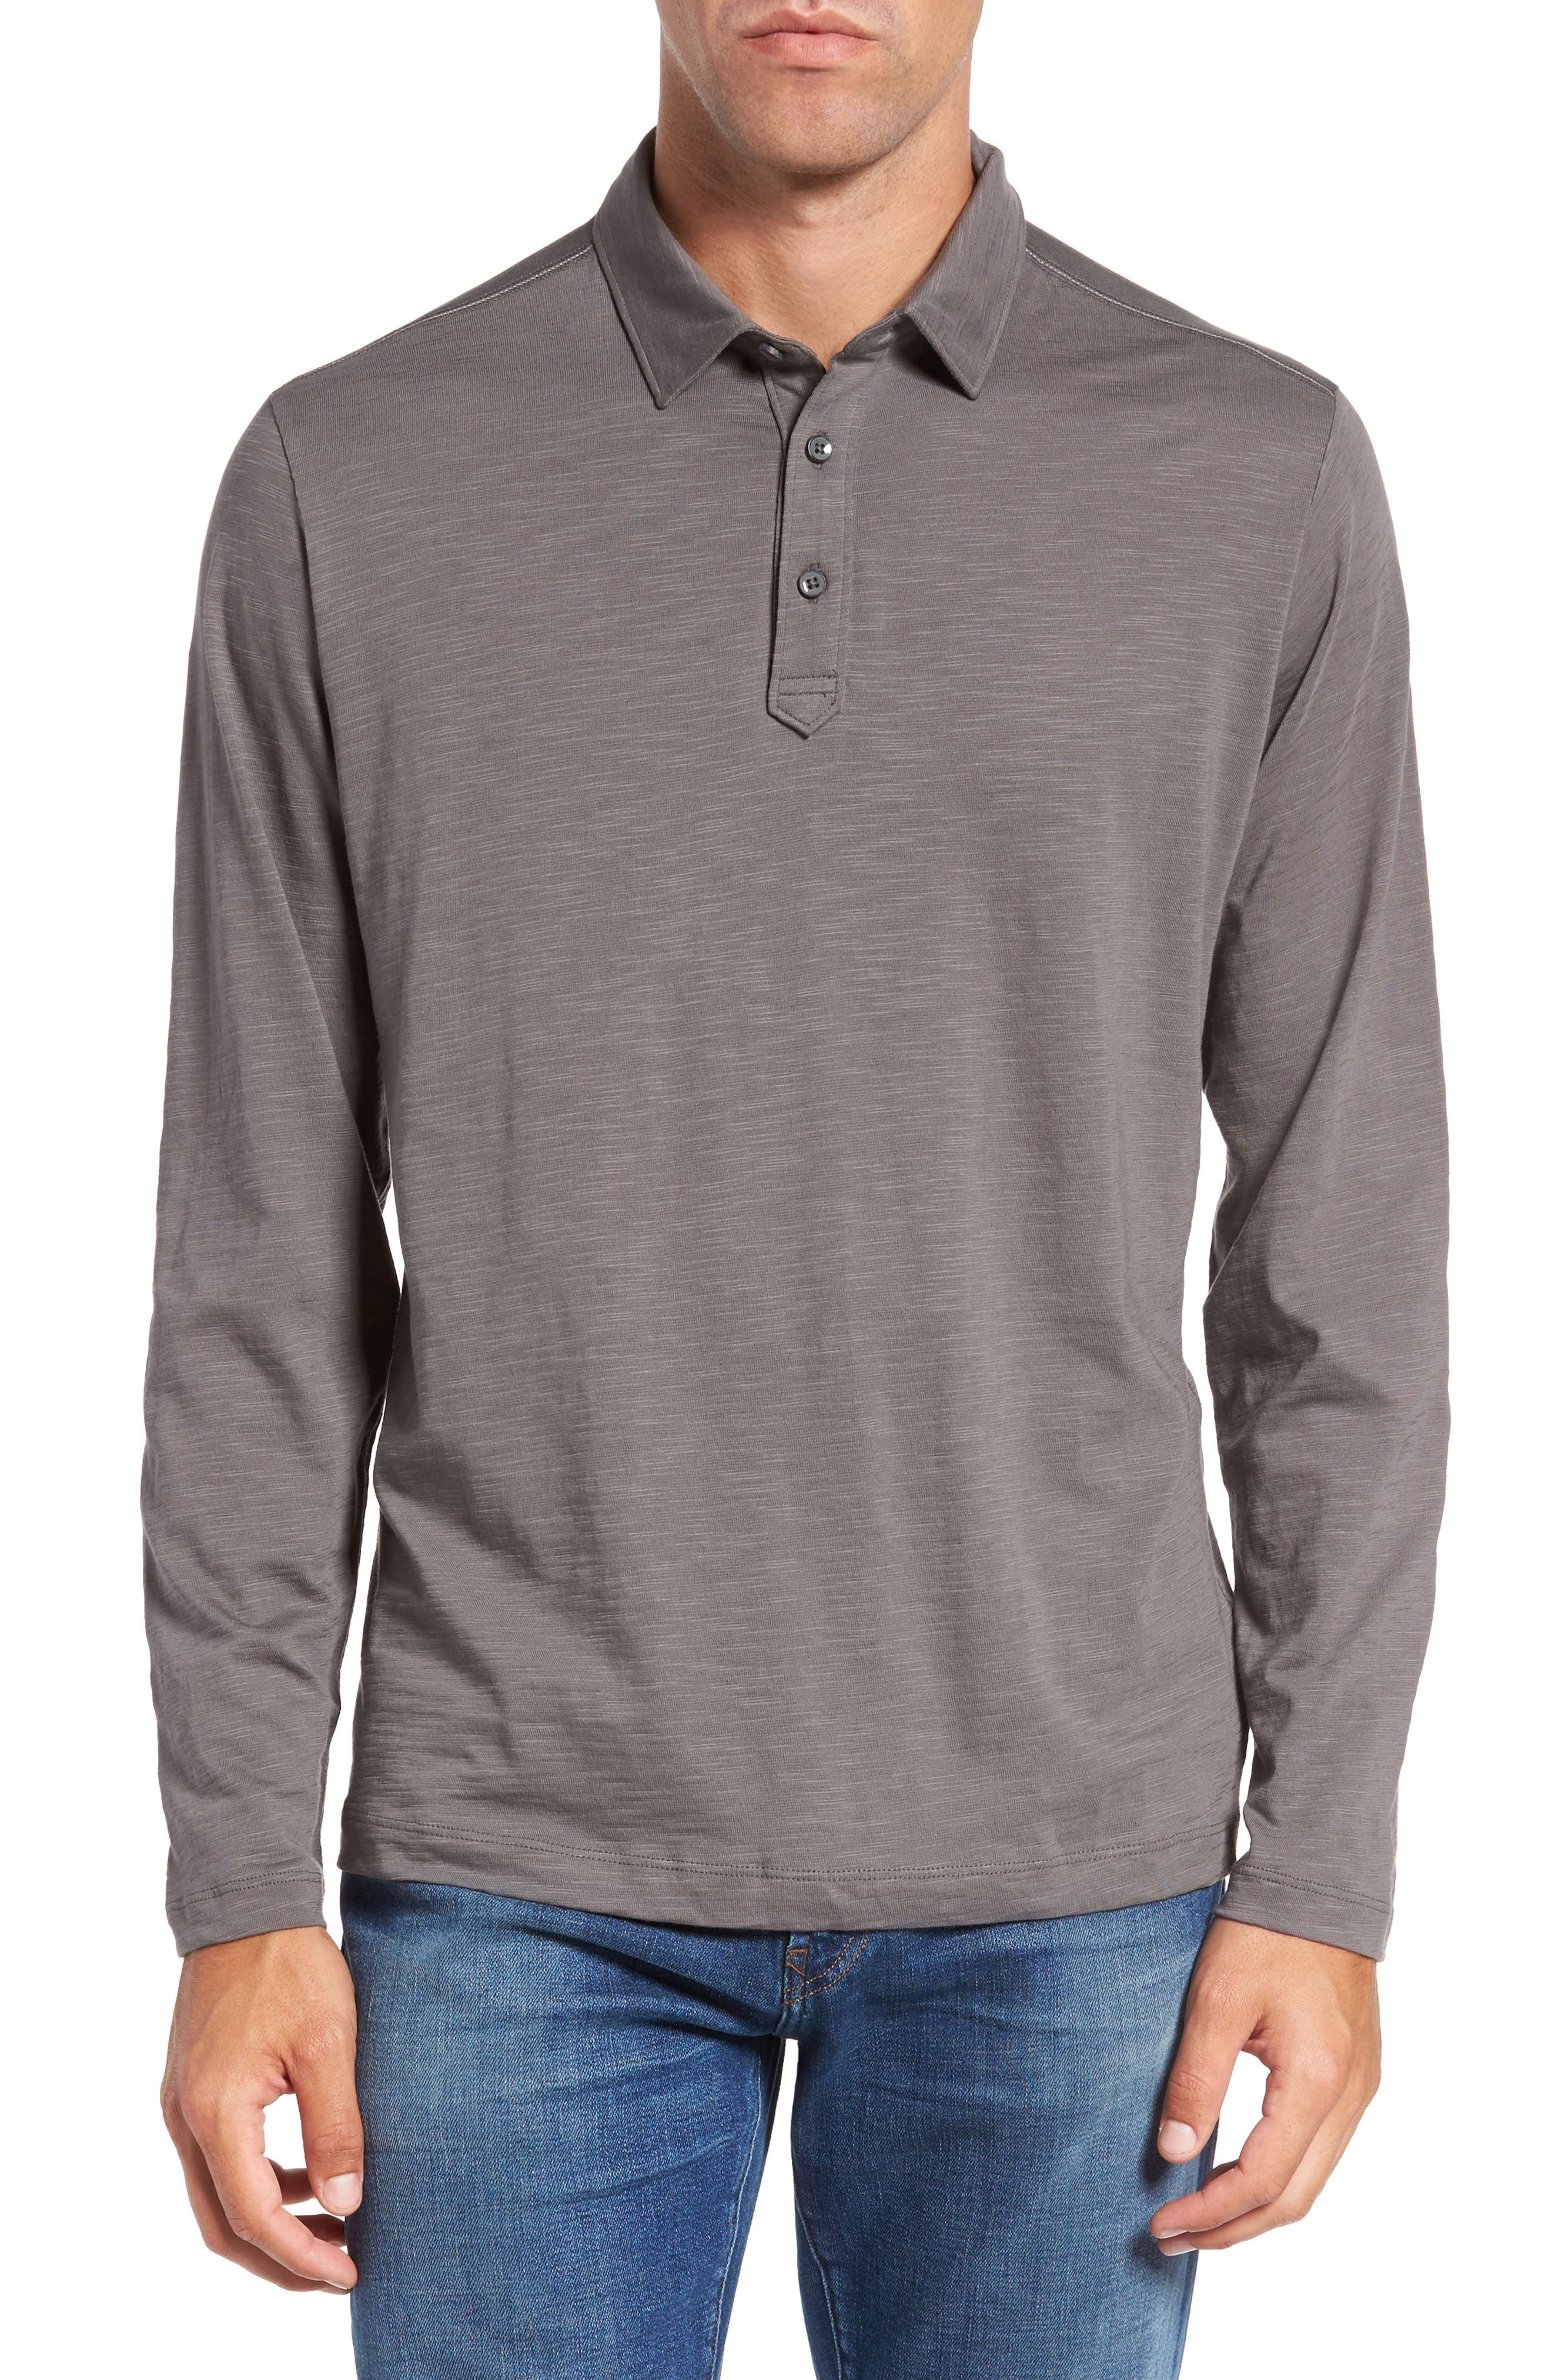 Tommy Bahama 'Portside Player Spectator' Long Sleeve Jersey Polo